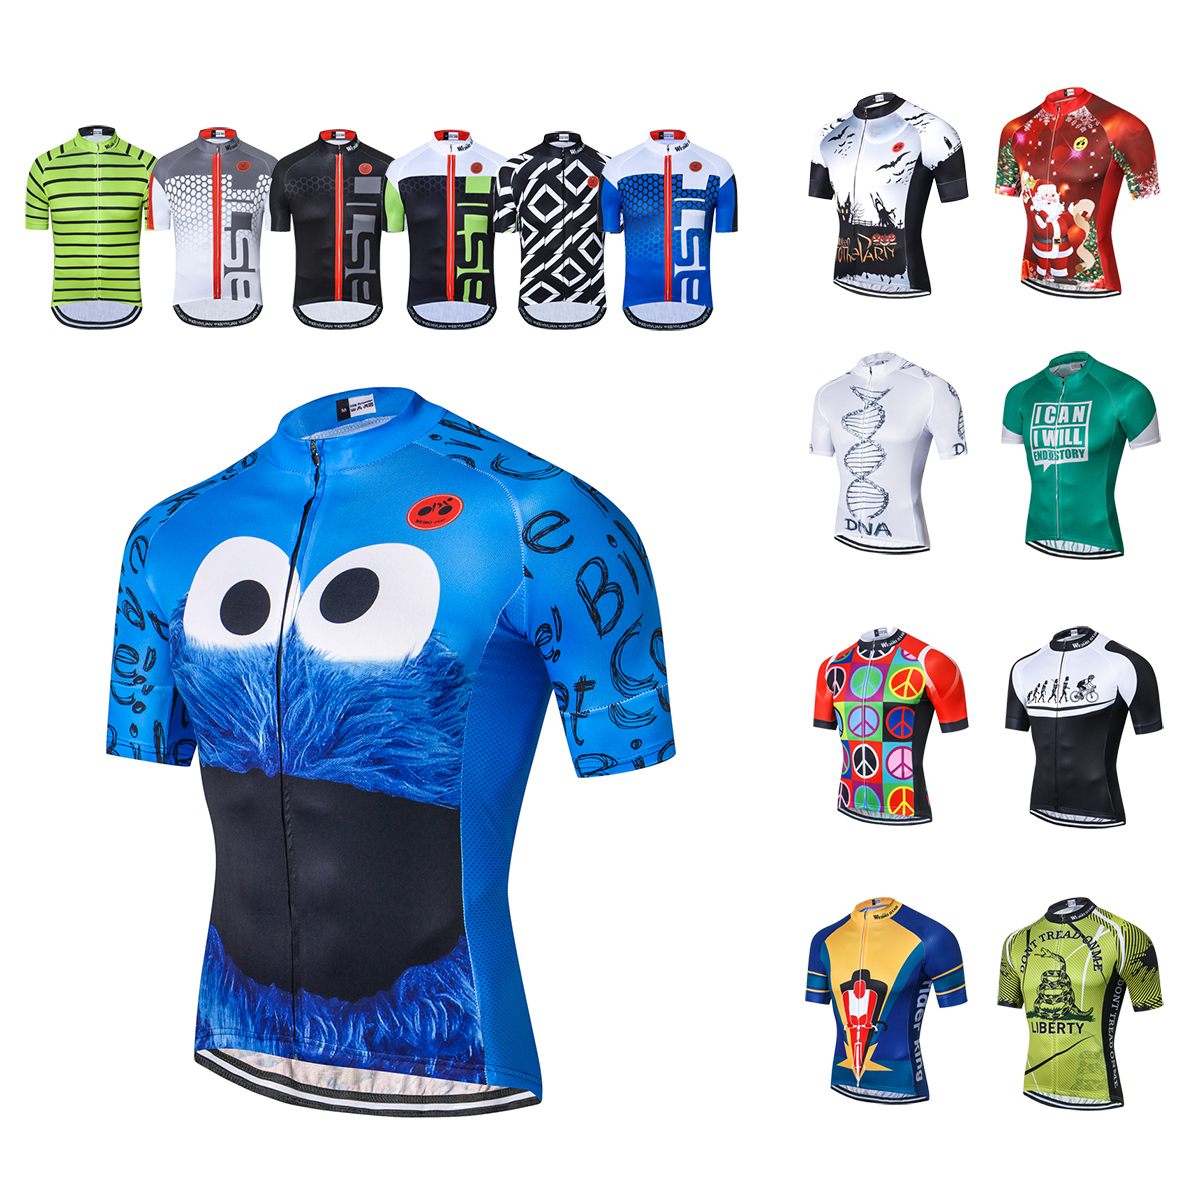 2019 Cycling Jersey Men Summer Short Sleeve Pro Mtb Team Mountain Bike Jersey Ropa Ciclsimo Maillot Bicycle Clothing Shirts Top image